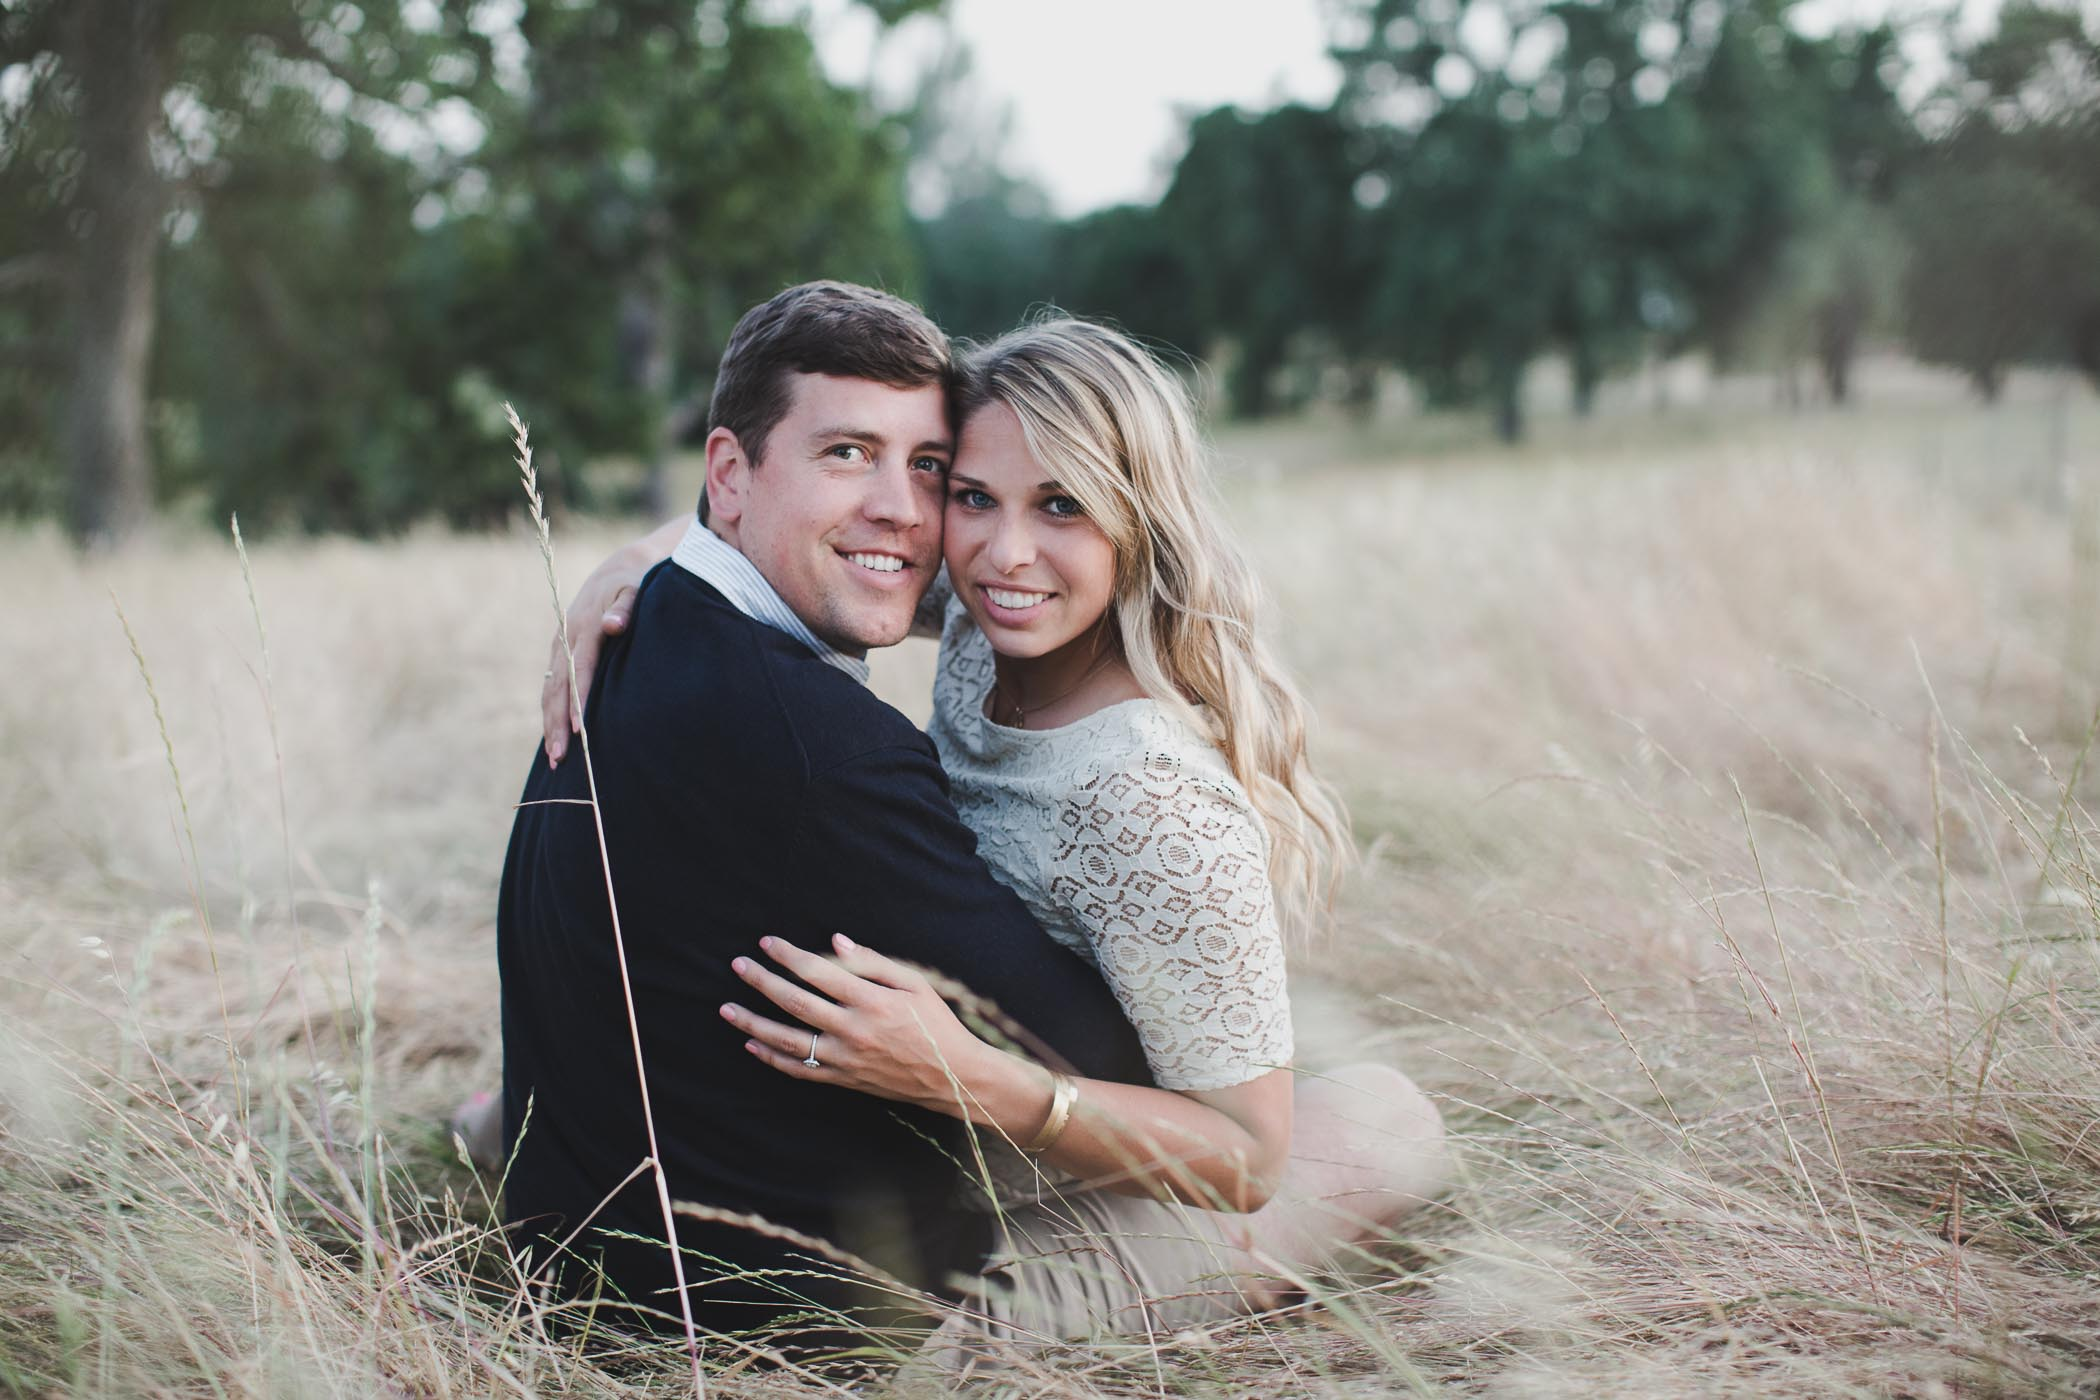 AVH_Photography_upper_bidwell_park_engagement_photography_chico_california_spring_bidwell_golf_course_0062.jpg